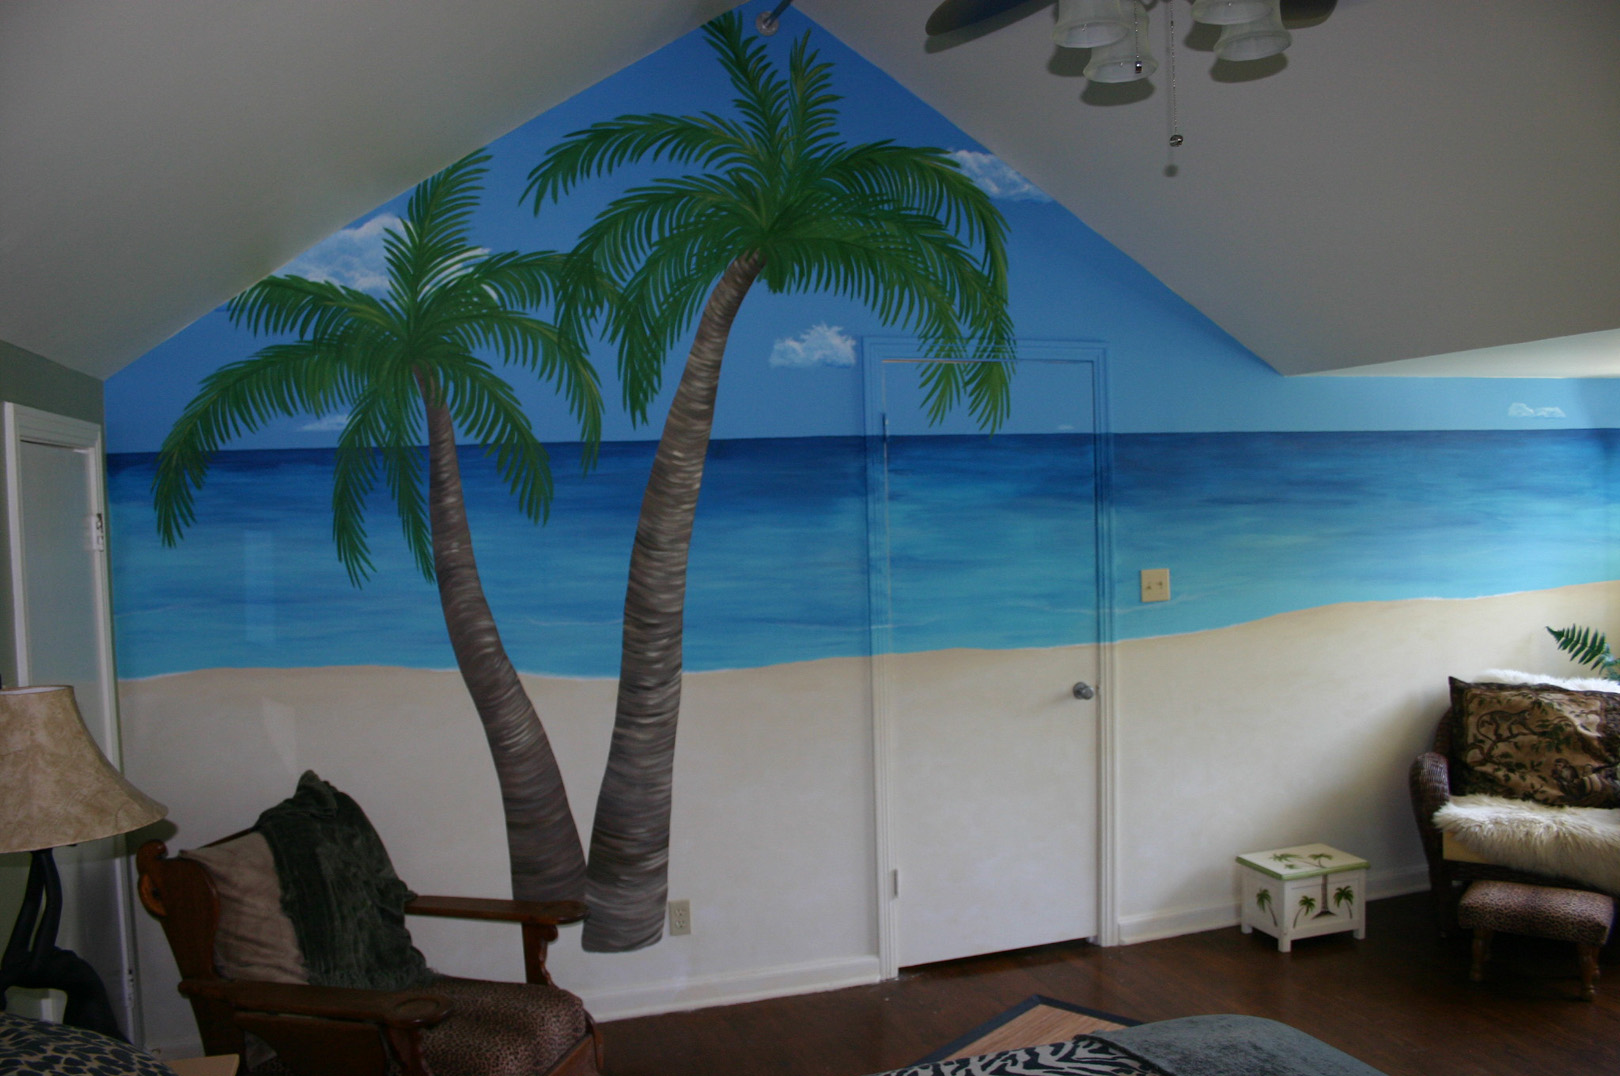 Playroom ideas on pinterest 163 pins for Beach mural painting